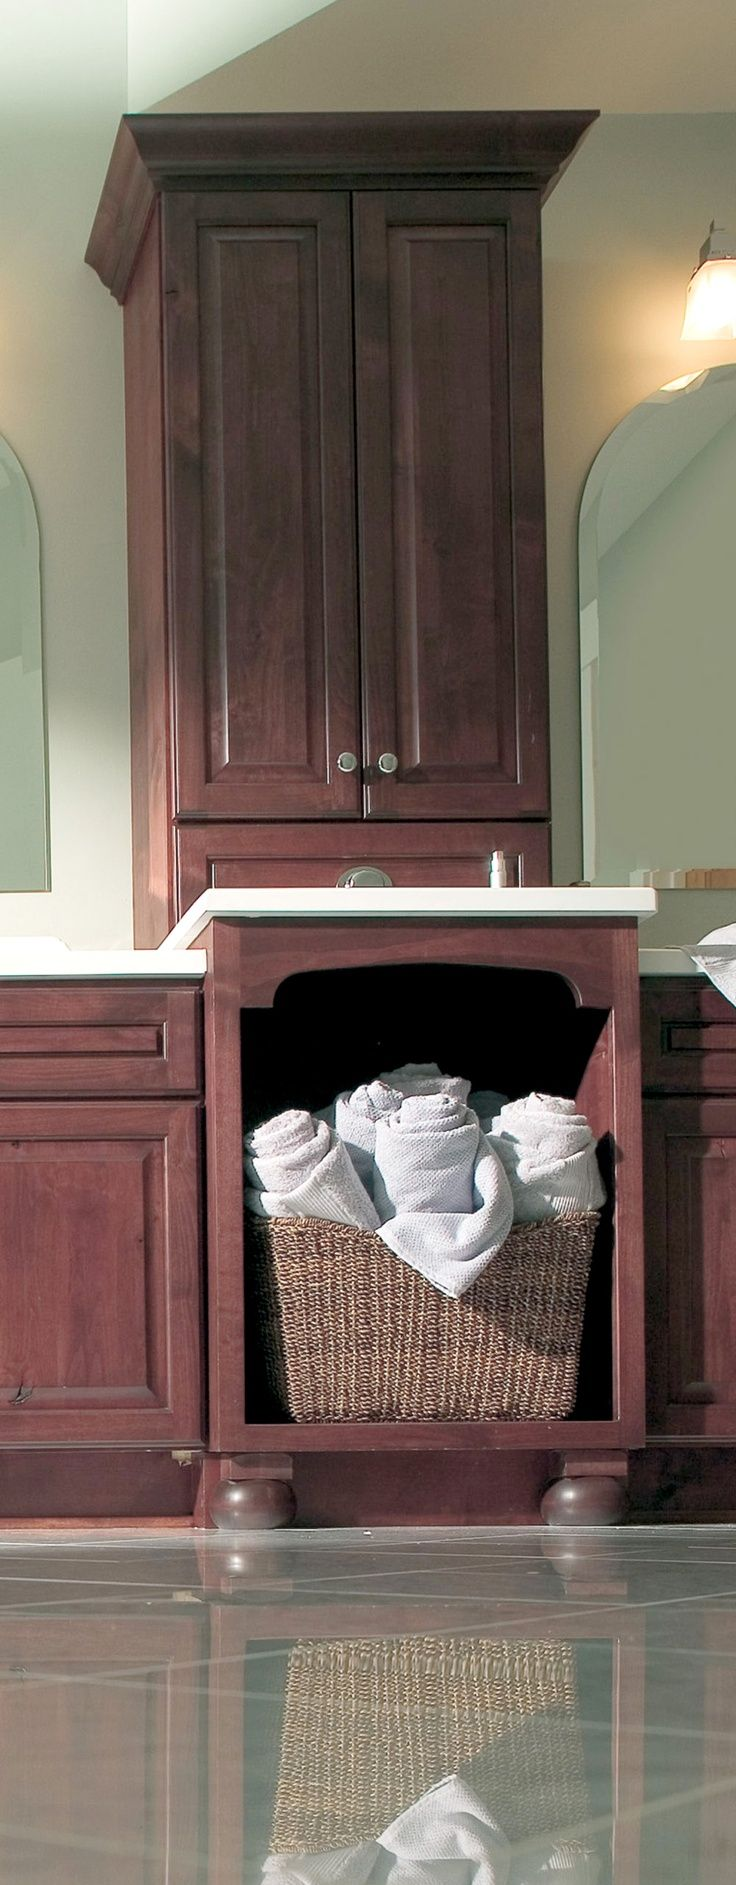 Include laundry basket storage in your bathroom vanity design to accommodate freshly clean towels or your dirty linens and garments. – Find more ideas like this on DuraSupreme.com  #bathroom #cabinetry #cabinets #vanity